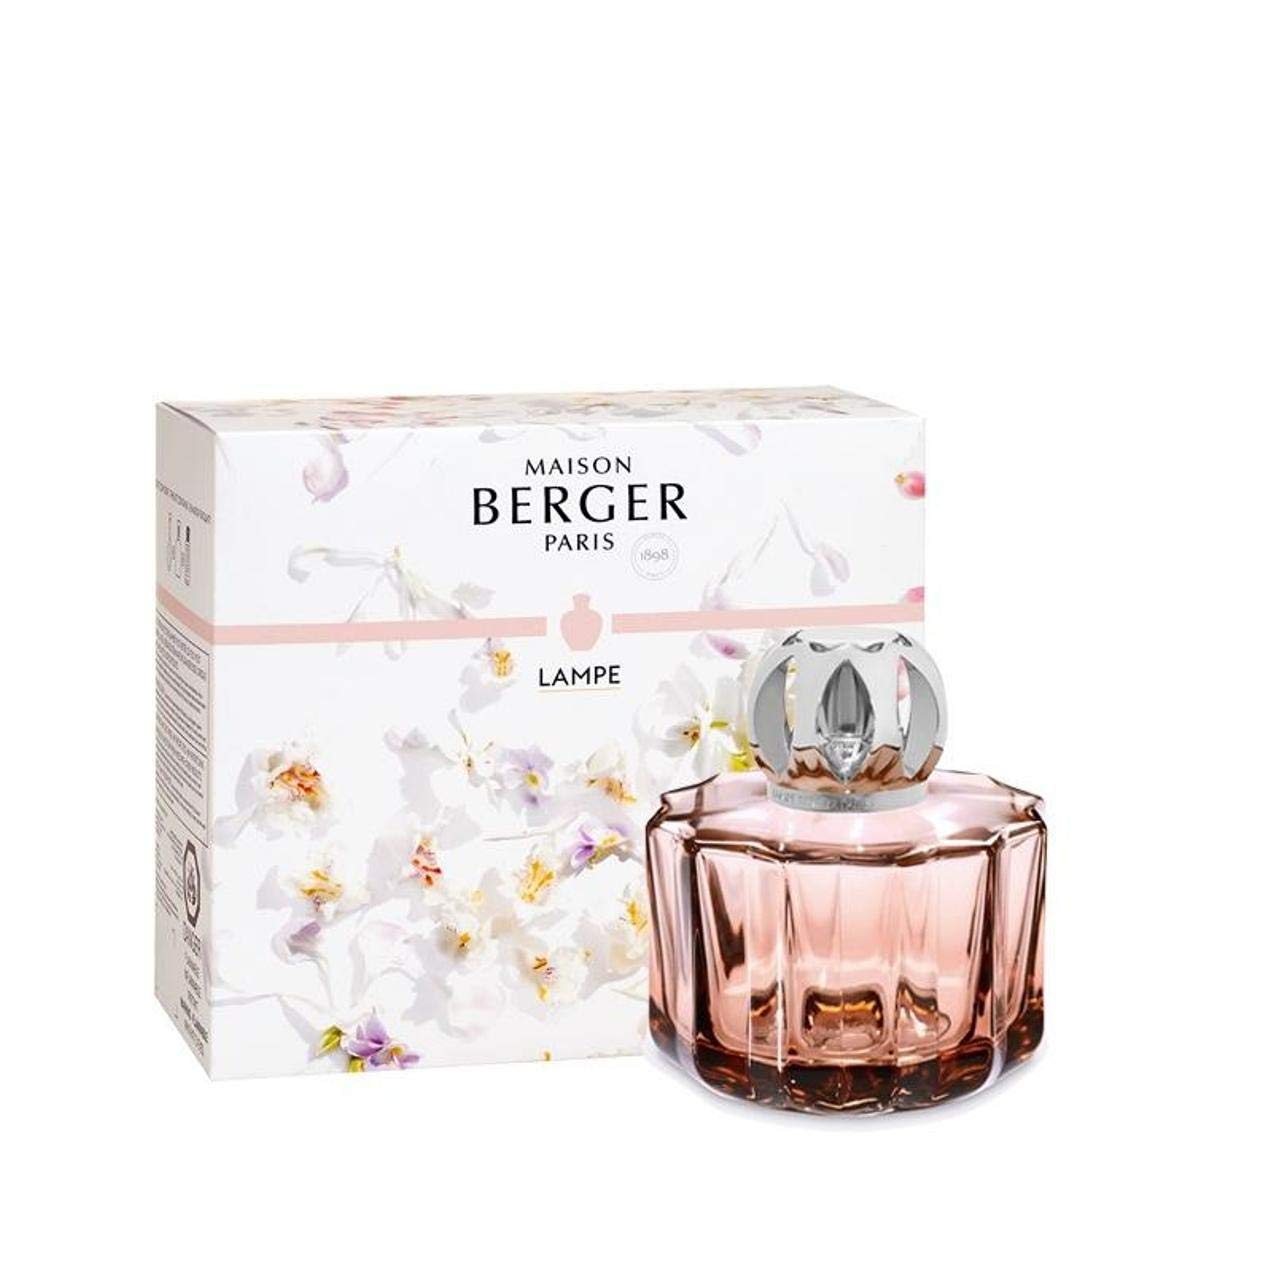 MAISON BERGER (Lampe Berger Poesy Gift Set Lamp - Includes 180ml Bouquet Liberty Refill by MAISON BERGER (Image #1)